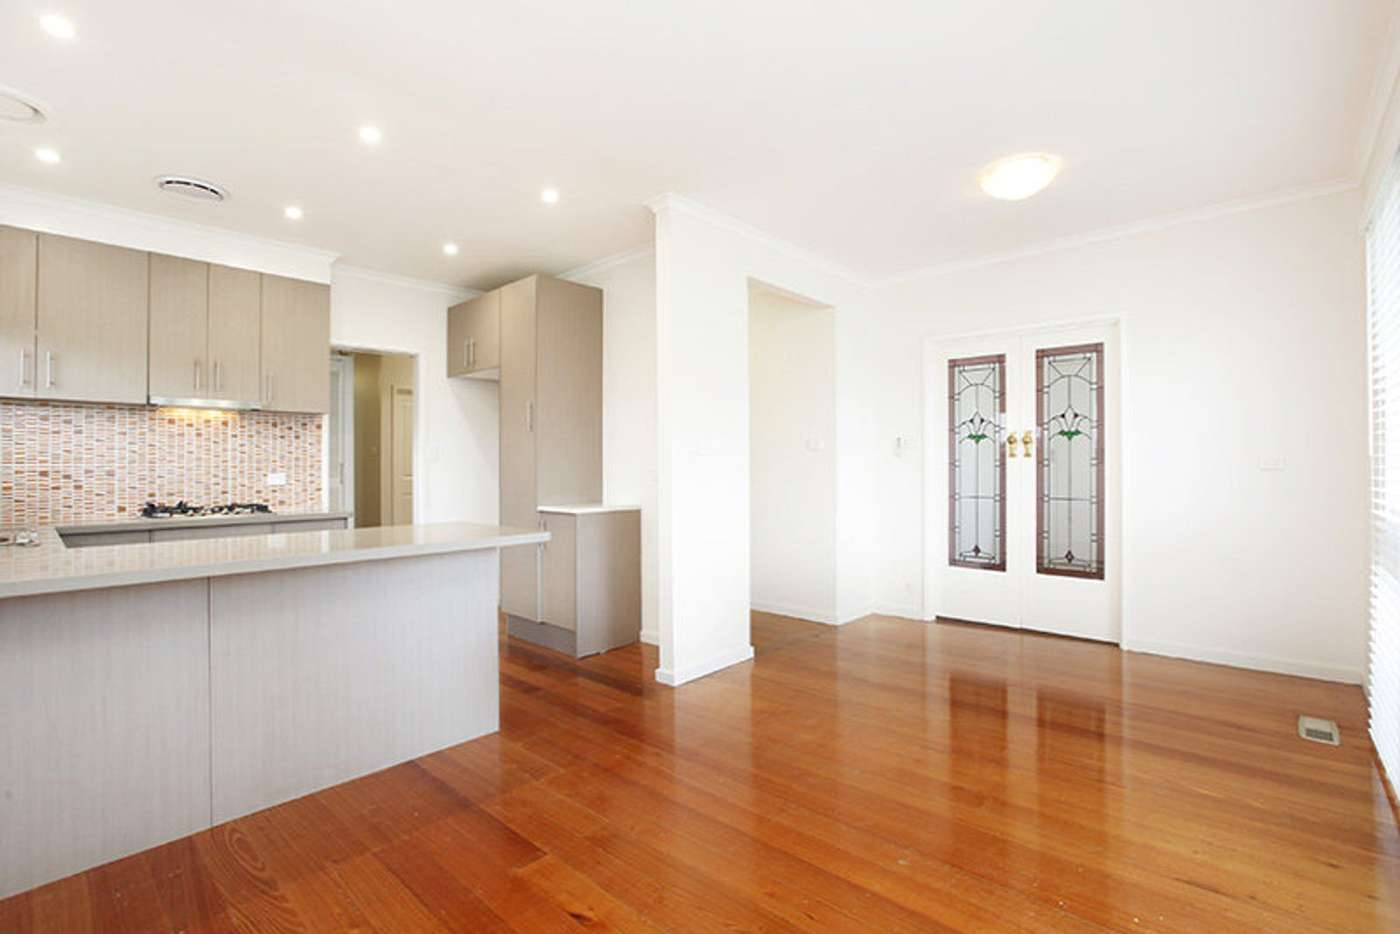 Main view of Homely house listing, 53 Twyford Street, Williamstown VIC 3016